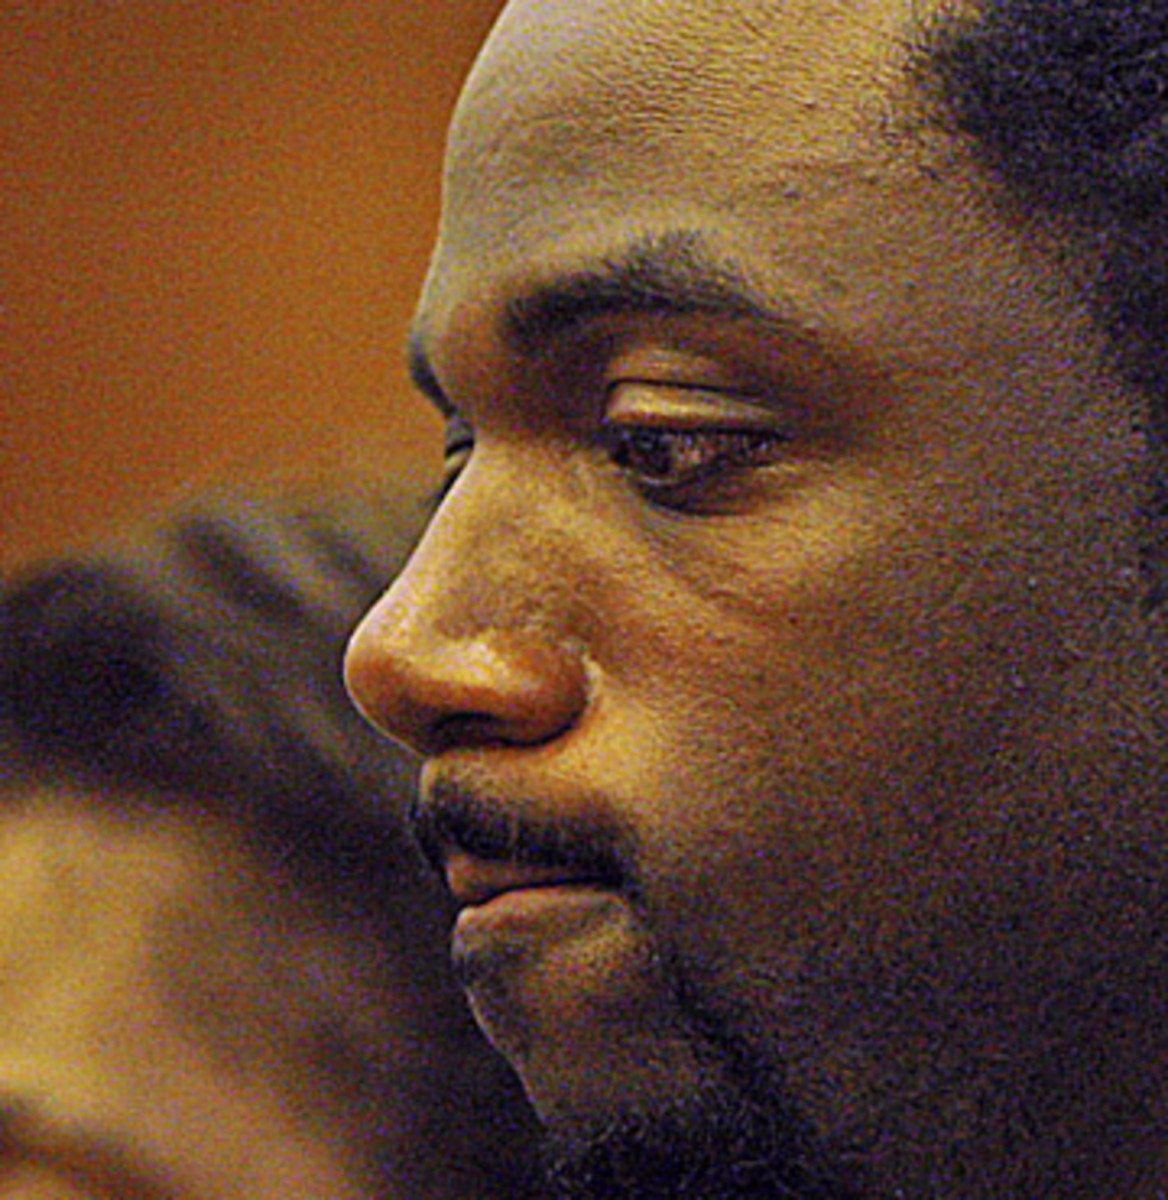 Stallworth in court in 2009 (Carl Juste/AP)